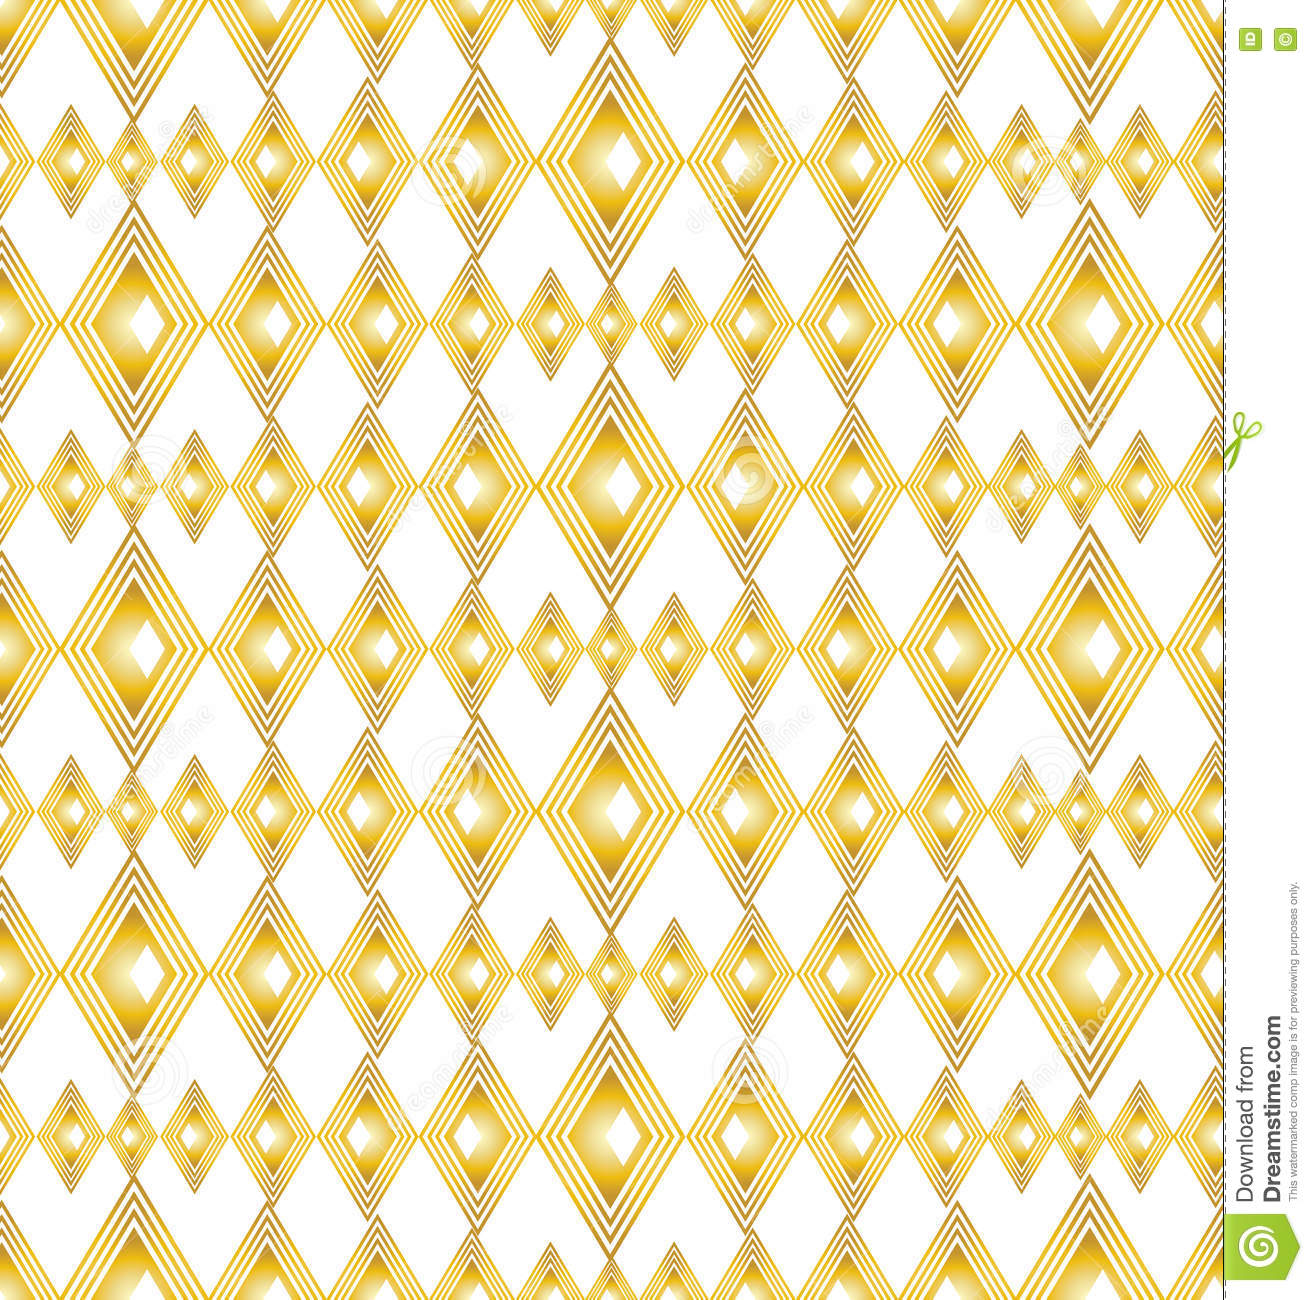 Modern Seamless Pattern In Gold Color Texture Art Deco Style For Print Home Decor Spring Summer Fashion Fabric Textile Website Background